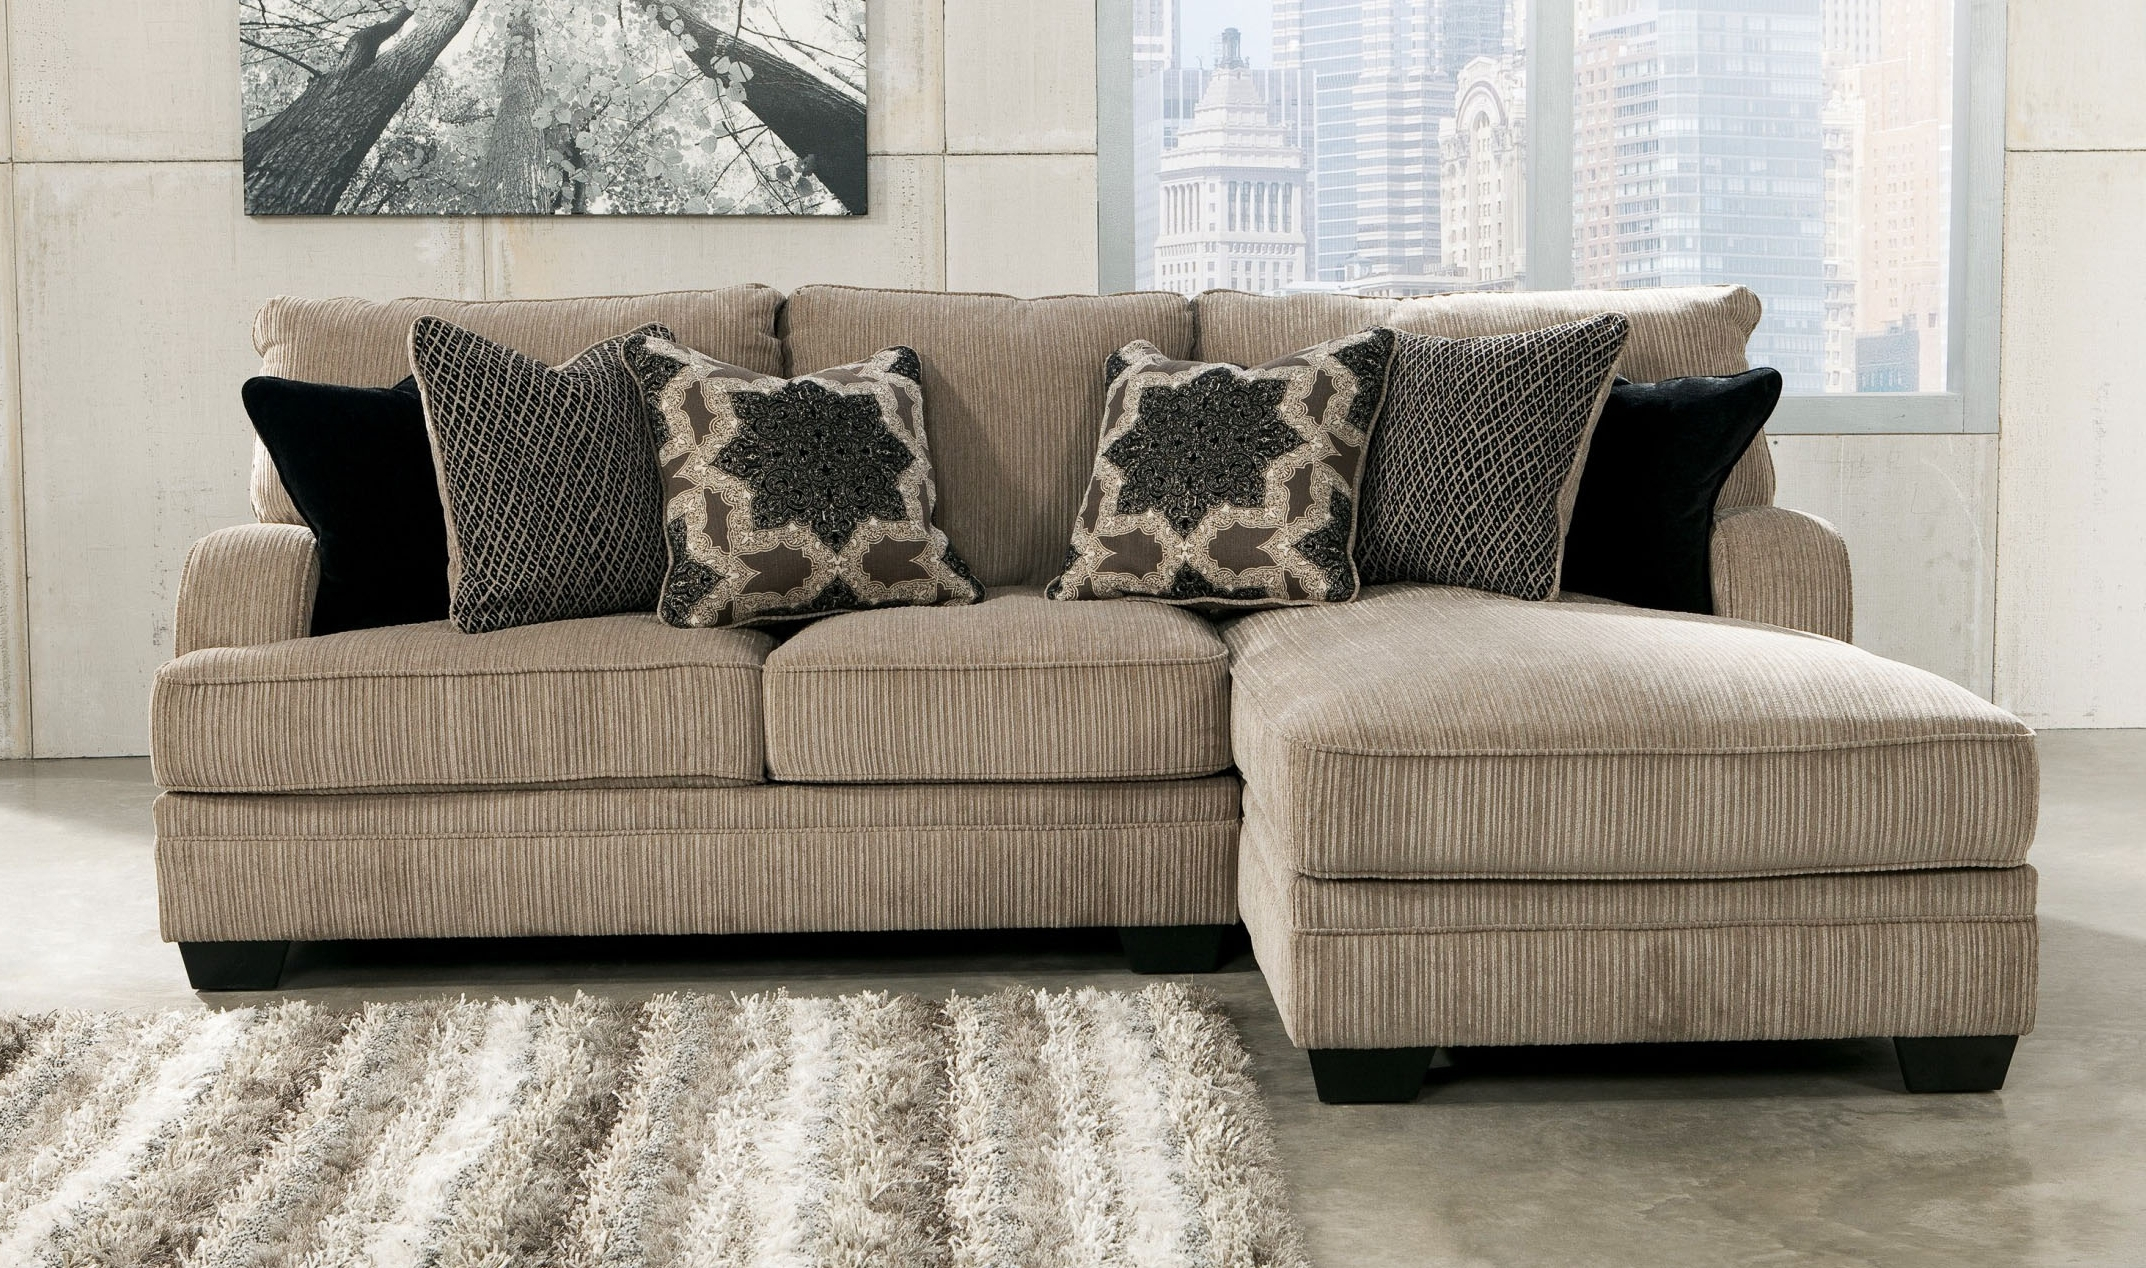 Sofa : Futon Sofa Bed Love Seat Sleeper Sofas Foldable Couch Bed Pertaining To Trendy Sectional Sofas With Recliners For Small Spaces (View 18 of 20)